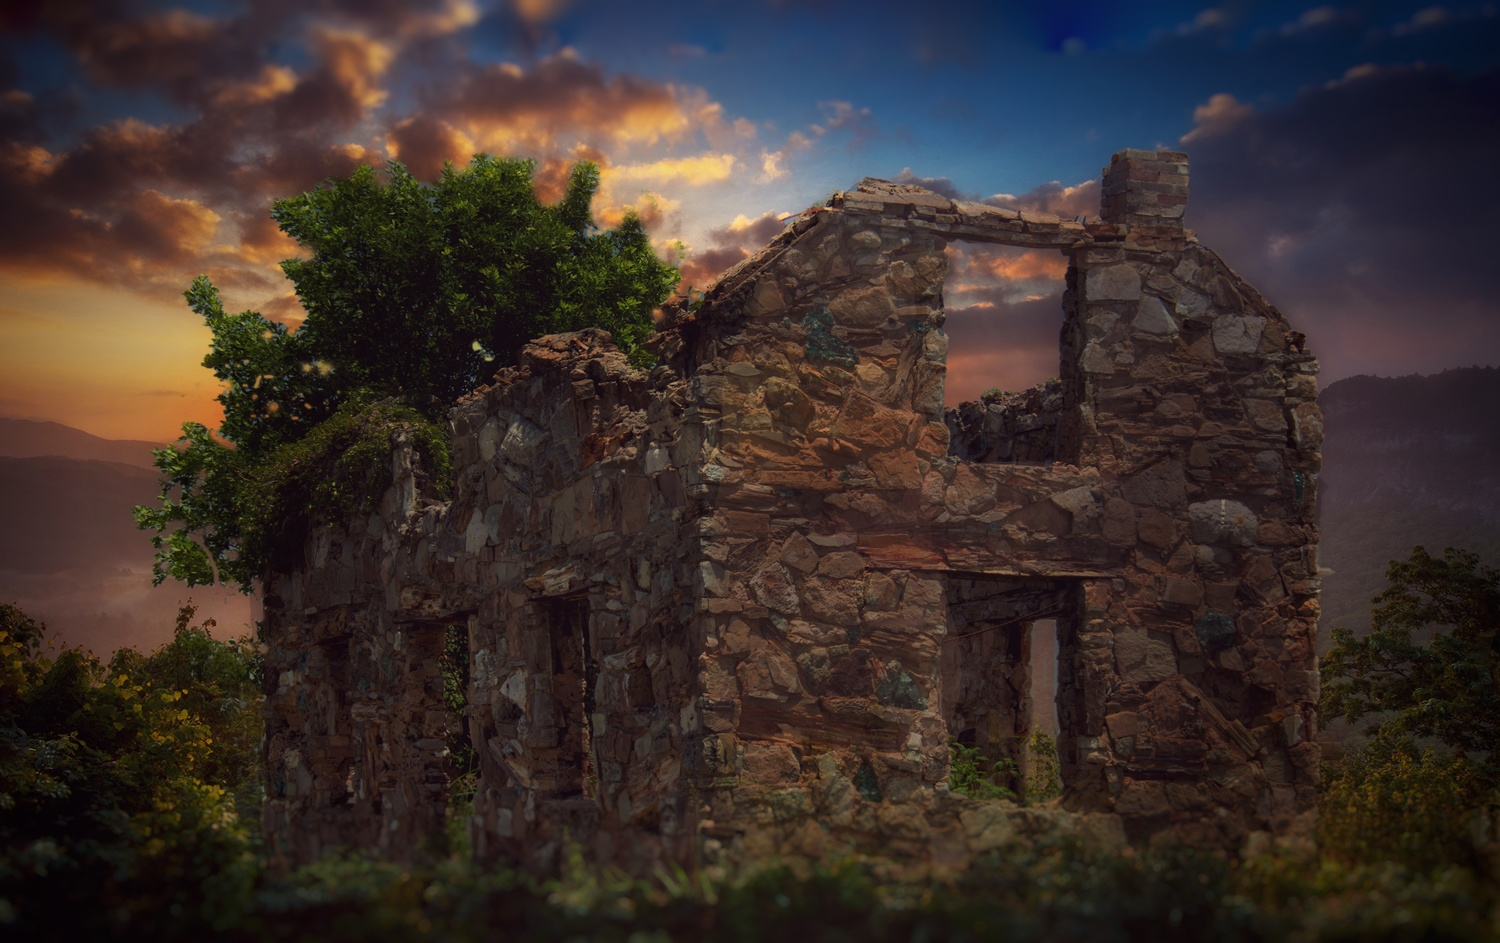 Abandoned by sunset by Bobby Wood